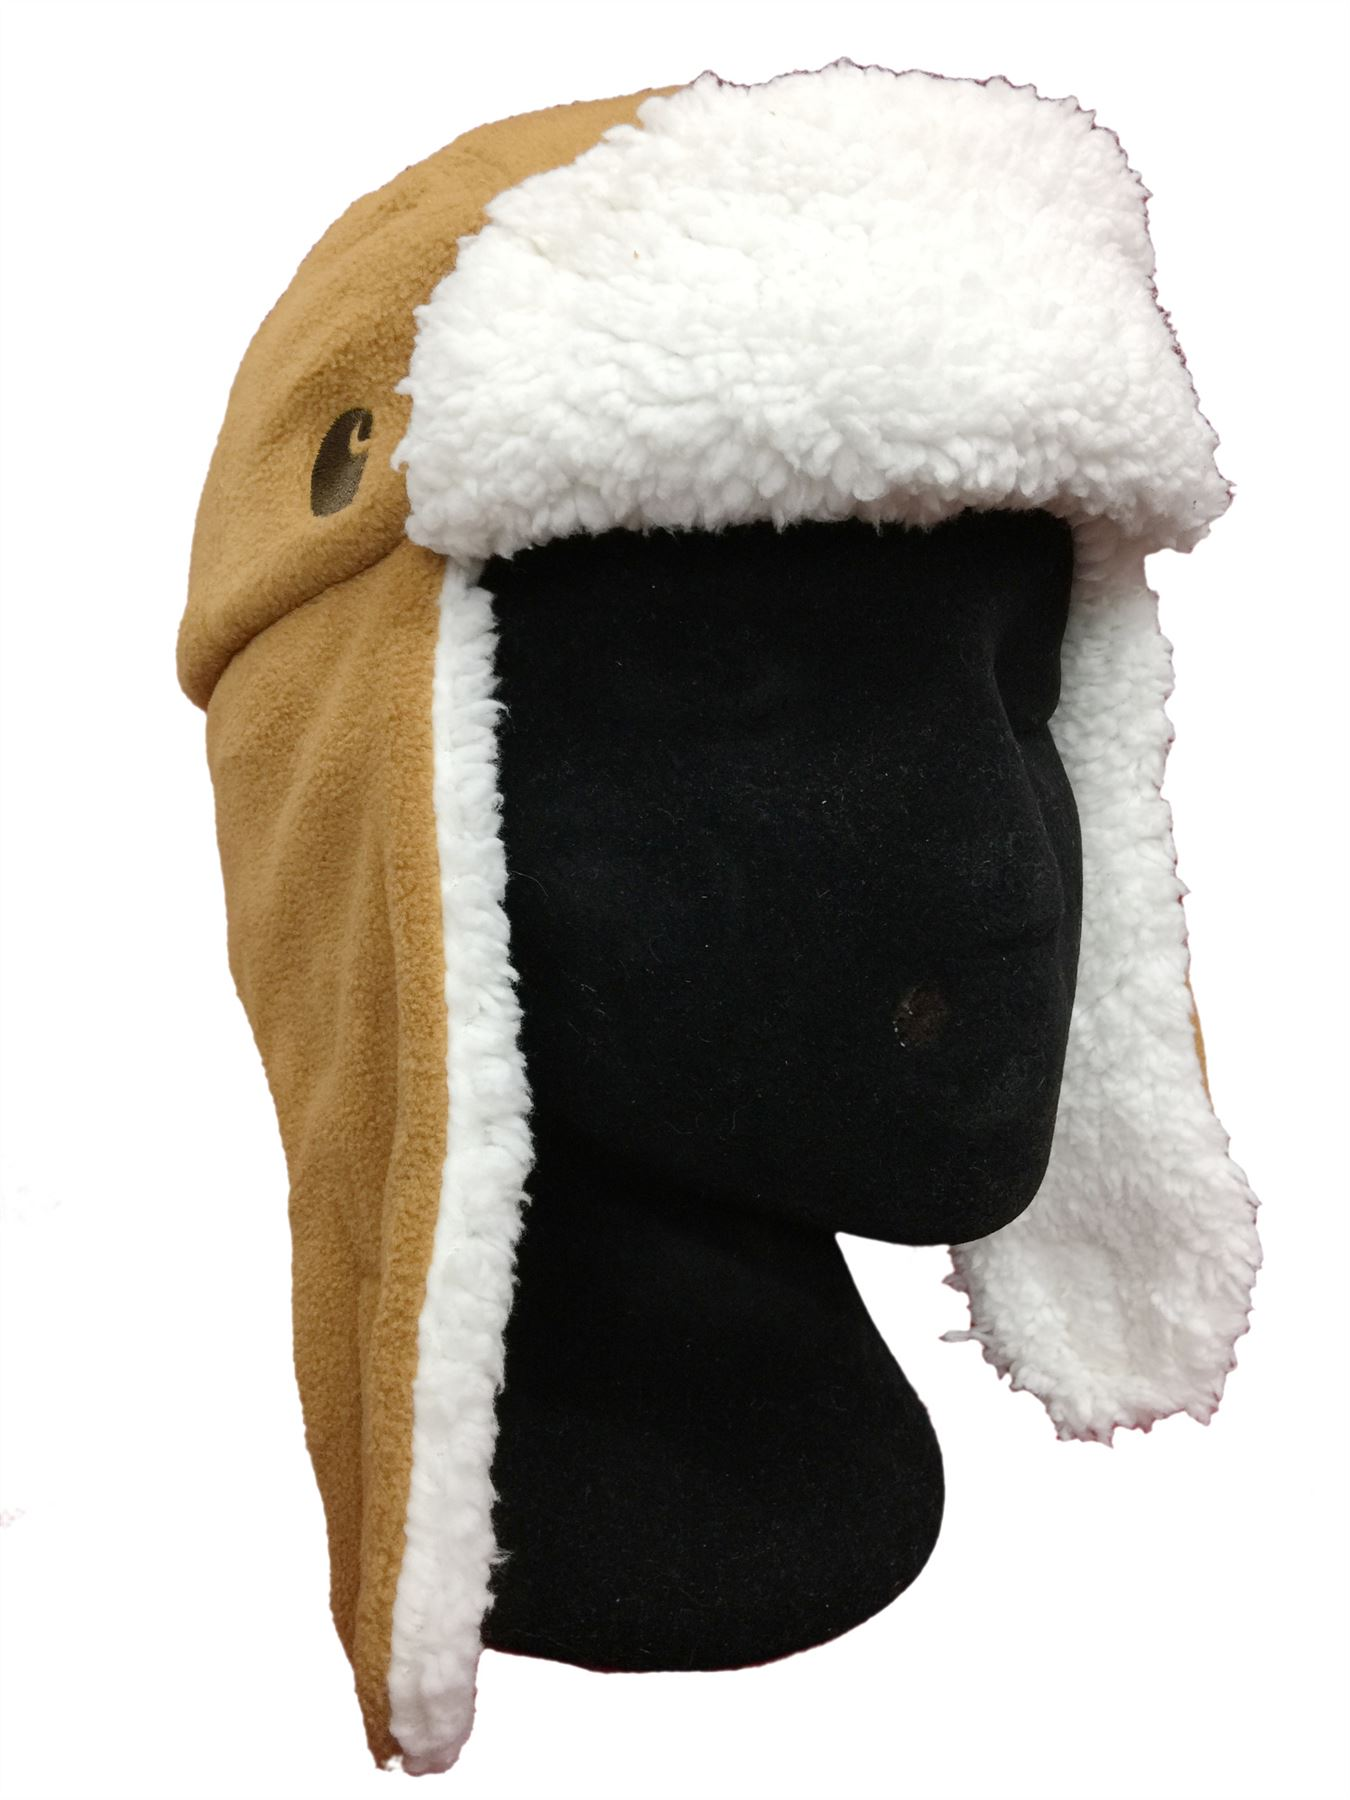 You searched for: fur baby hat! Etsy is the home to thousands of handmade, vintage, and one-of-a-kind products and gifts related to your search. Baby Fur Pom Pom Hat, Fur Pom Pom Beanies, Toddler Hat for girls, Double pom pom hat, Baby Pom Pom Beanies, Baby Pom Pom Hat, Pom Pom Hat MakeMyDaisies. 5 out of 5 stars (72) $